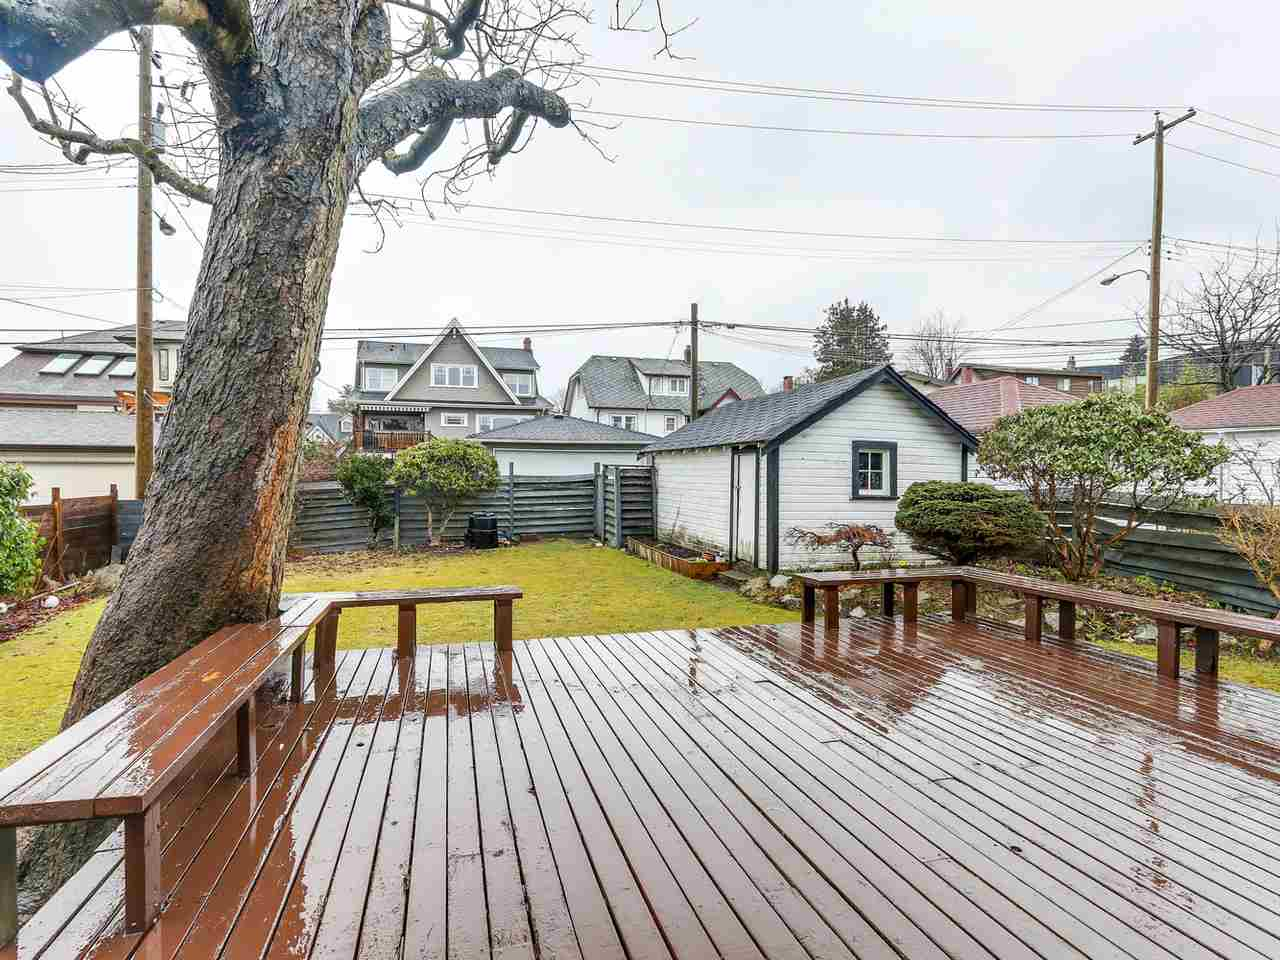 Photo 19: 2475 W 16TH Avenue in Vancouver: Kitsilano House for sale (Vancouver West)  : MLS® # R2143783